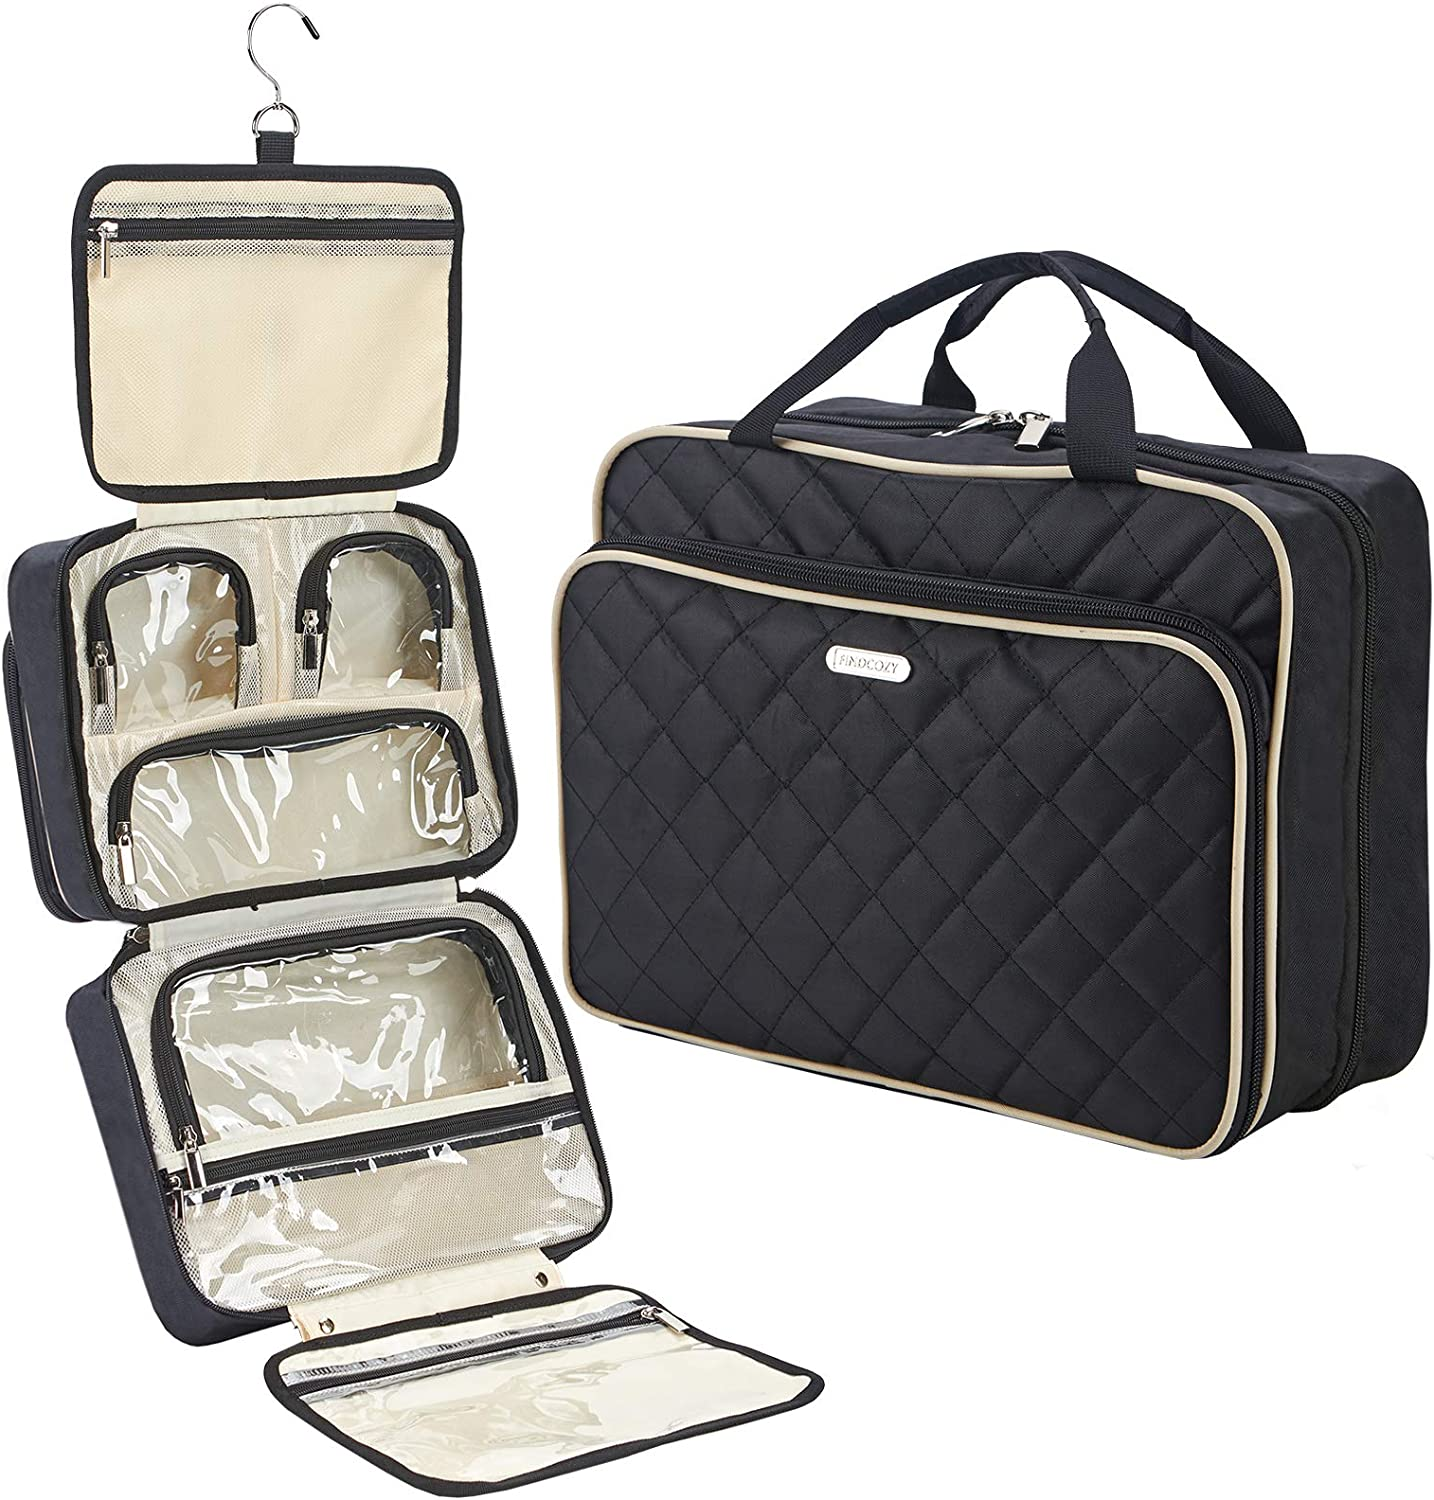 Findcozy Extra Large Toiletry Bag